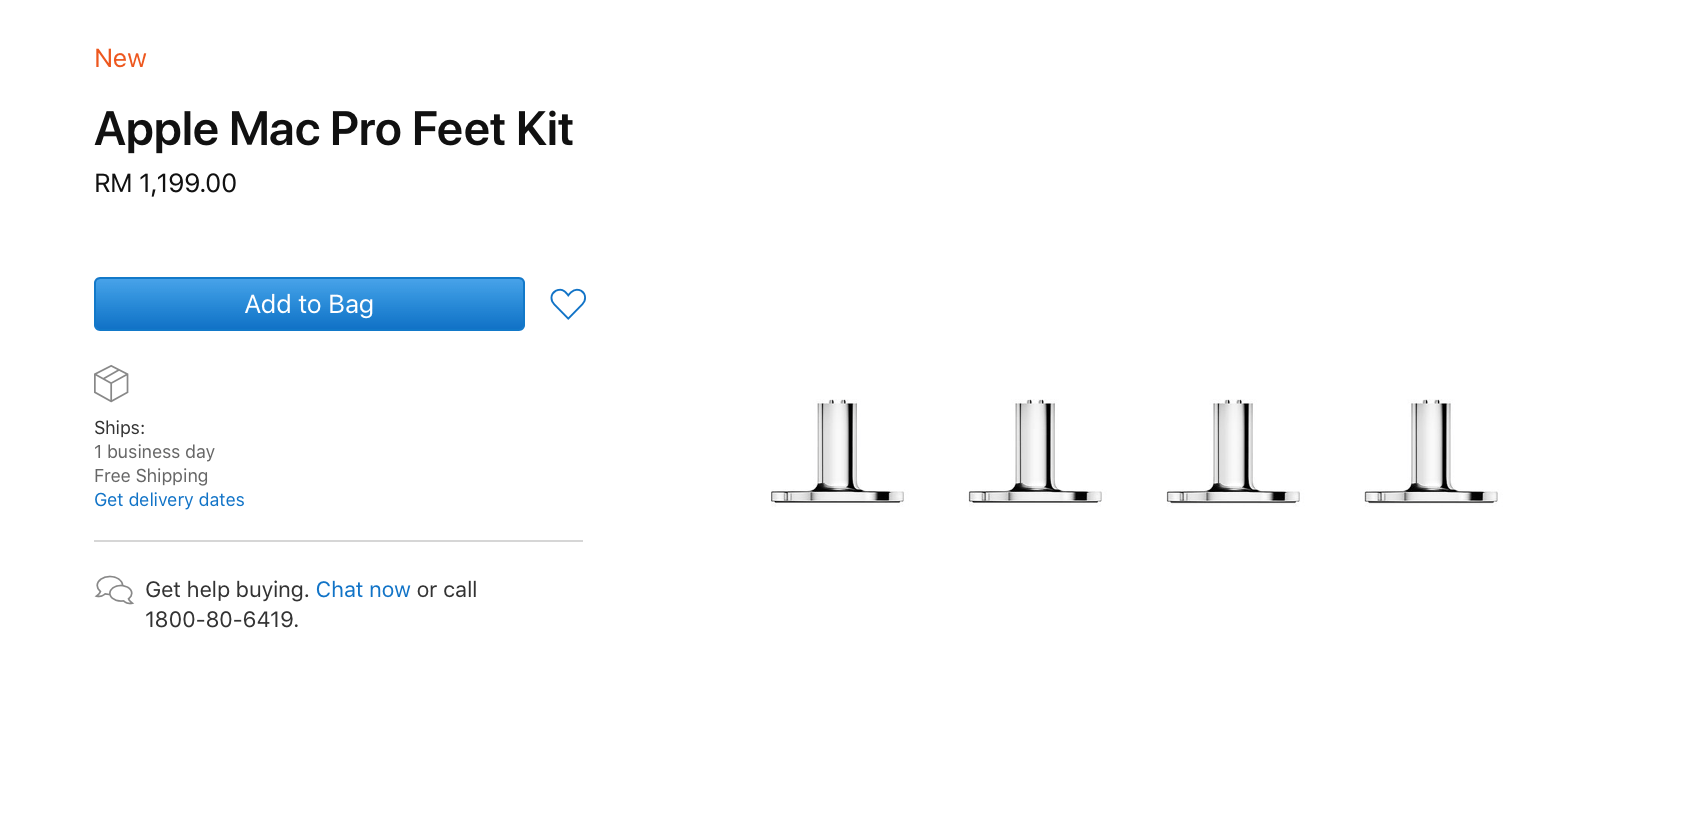 The price of the Mac Pro Wheels Kit can get you an iPhone SE and an AirPods 2